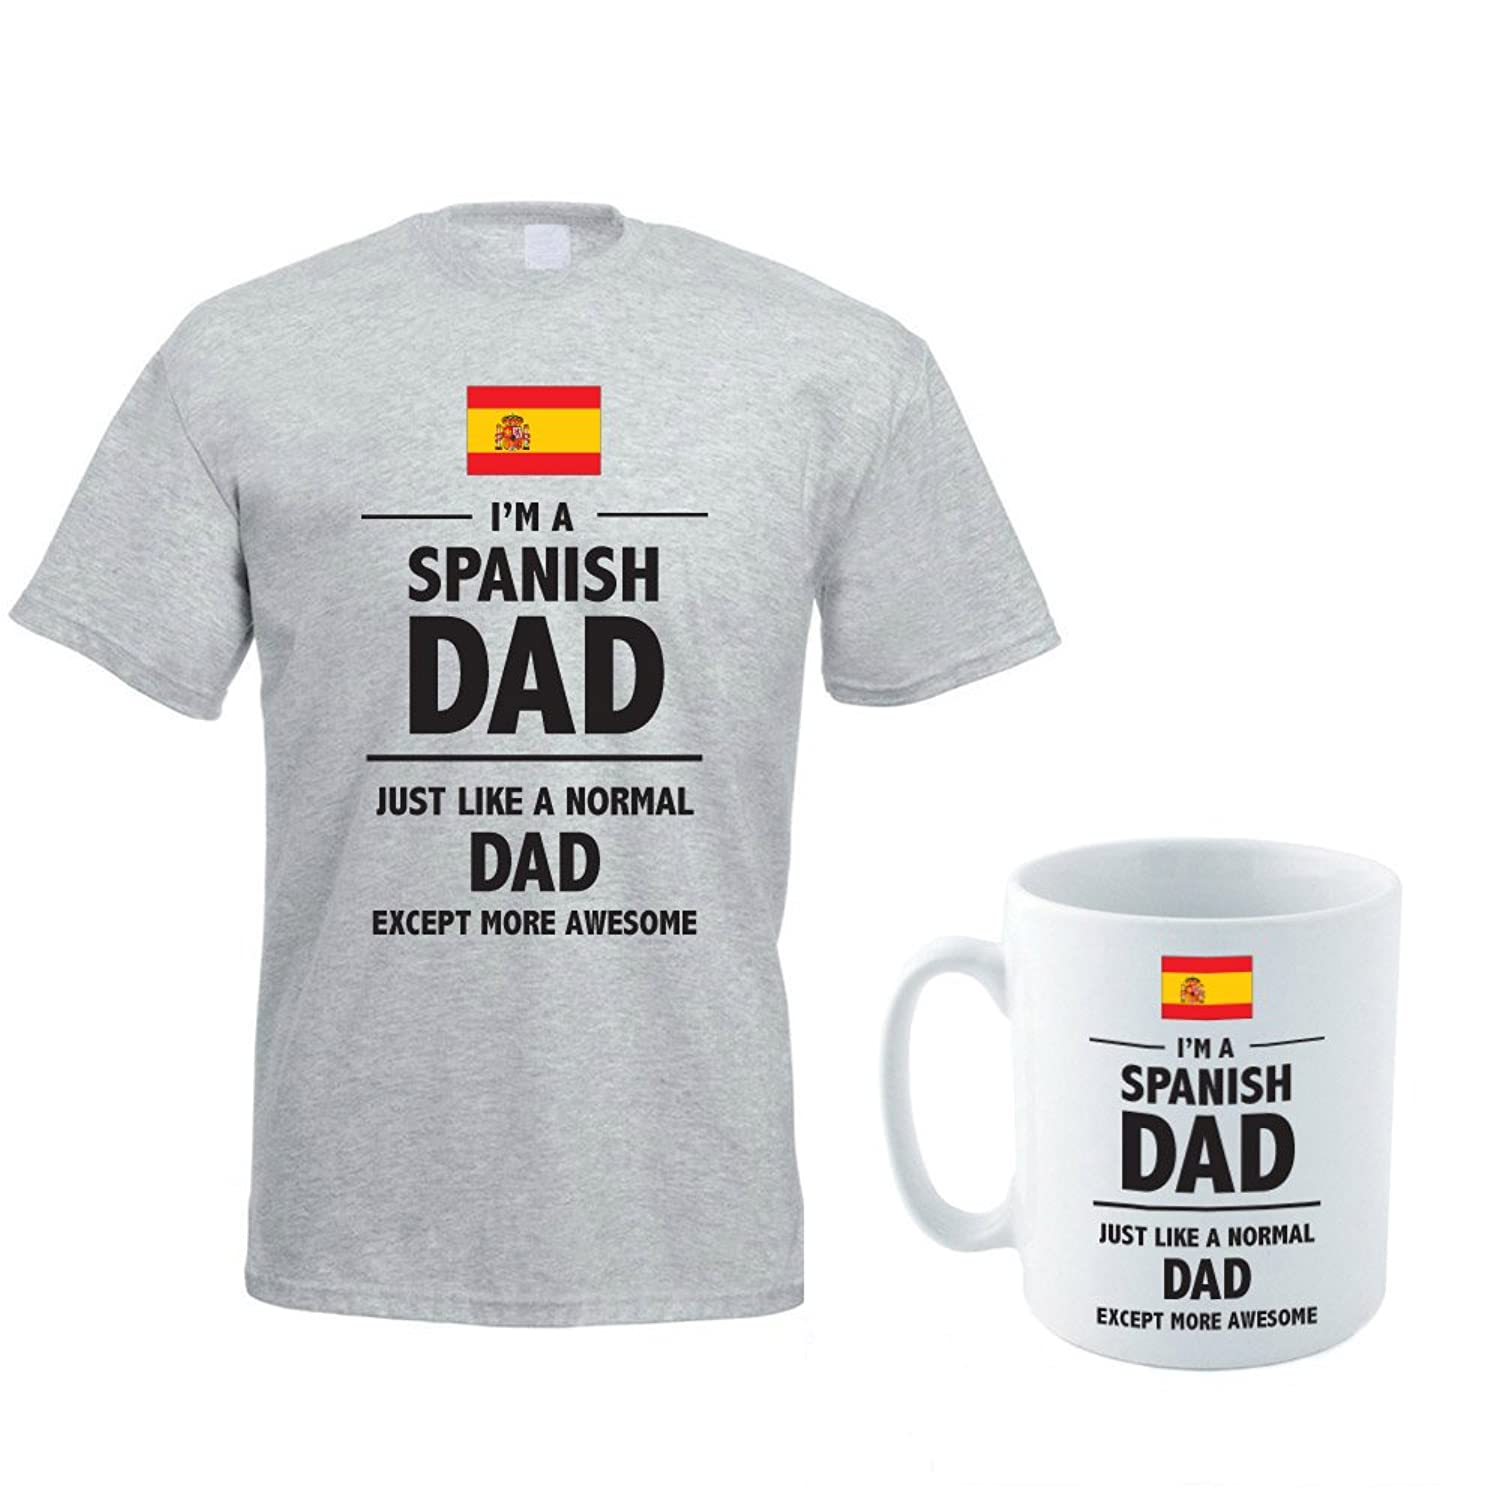 I'M A SPANISH DAD JUST LIKE A NORMAL DAD EXCEPT MORE AWESOME - Spain / Fun / Gift Idea Men's T-Shirt & Ceramic Mug